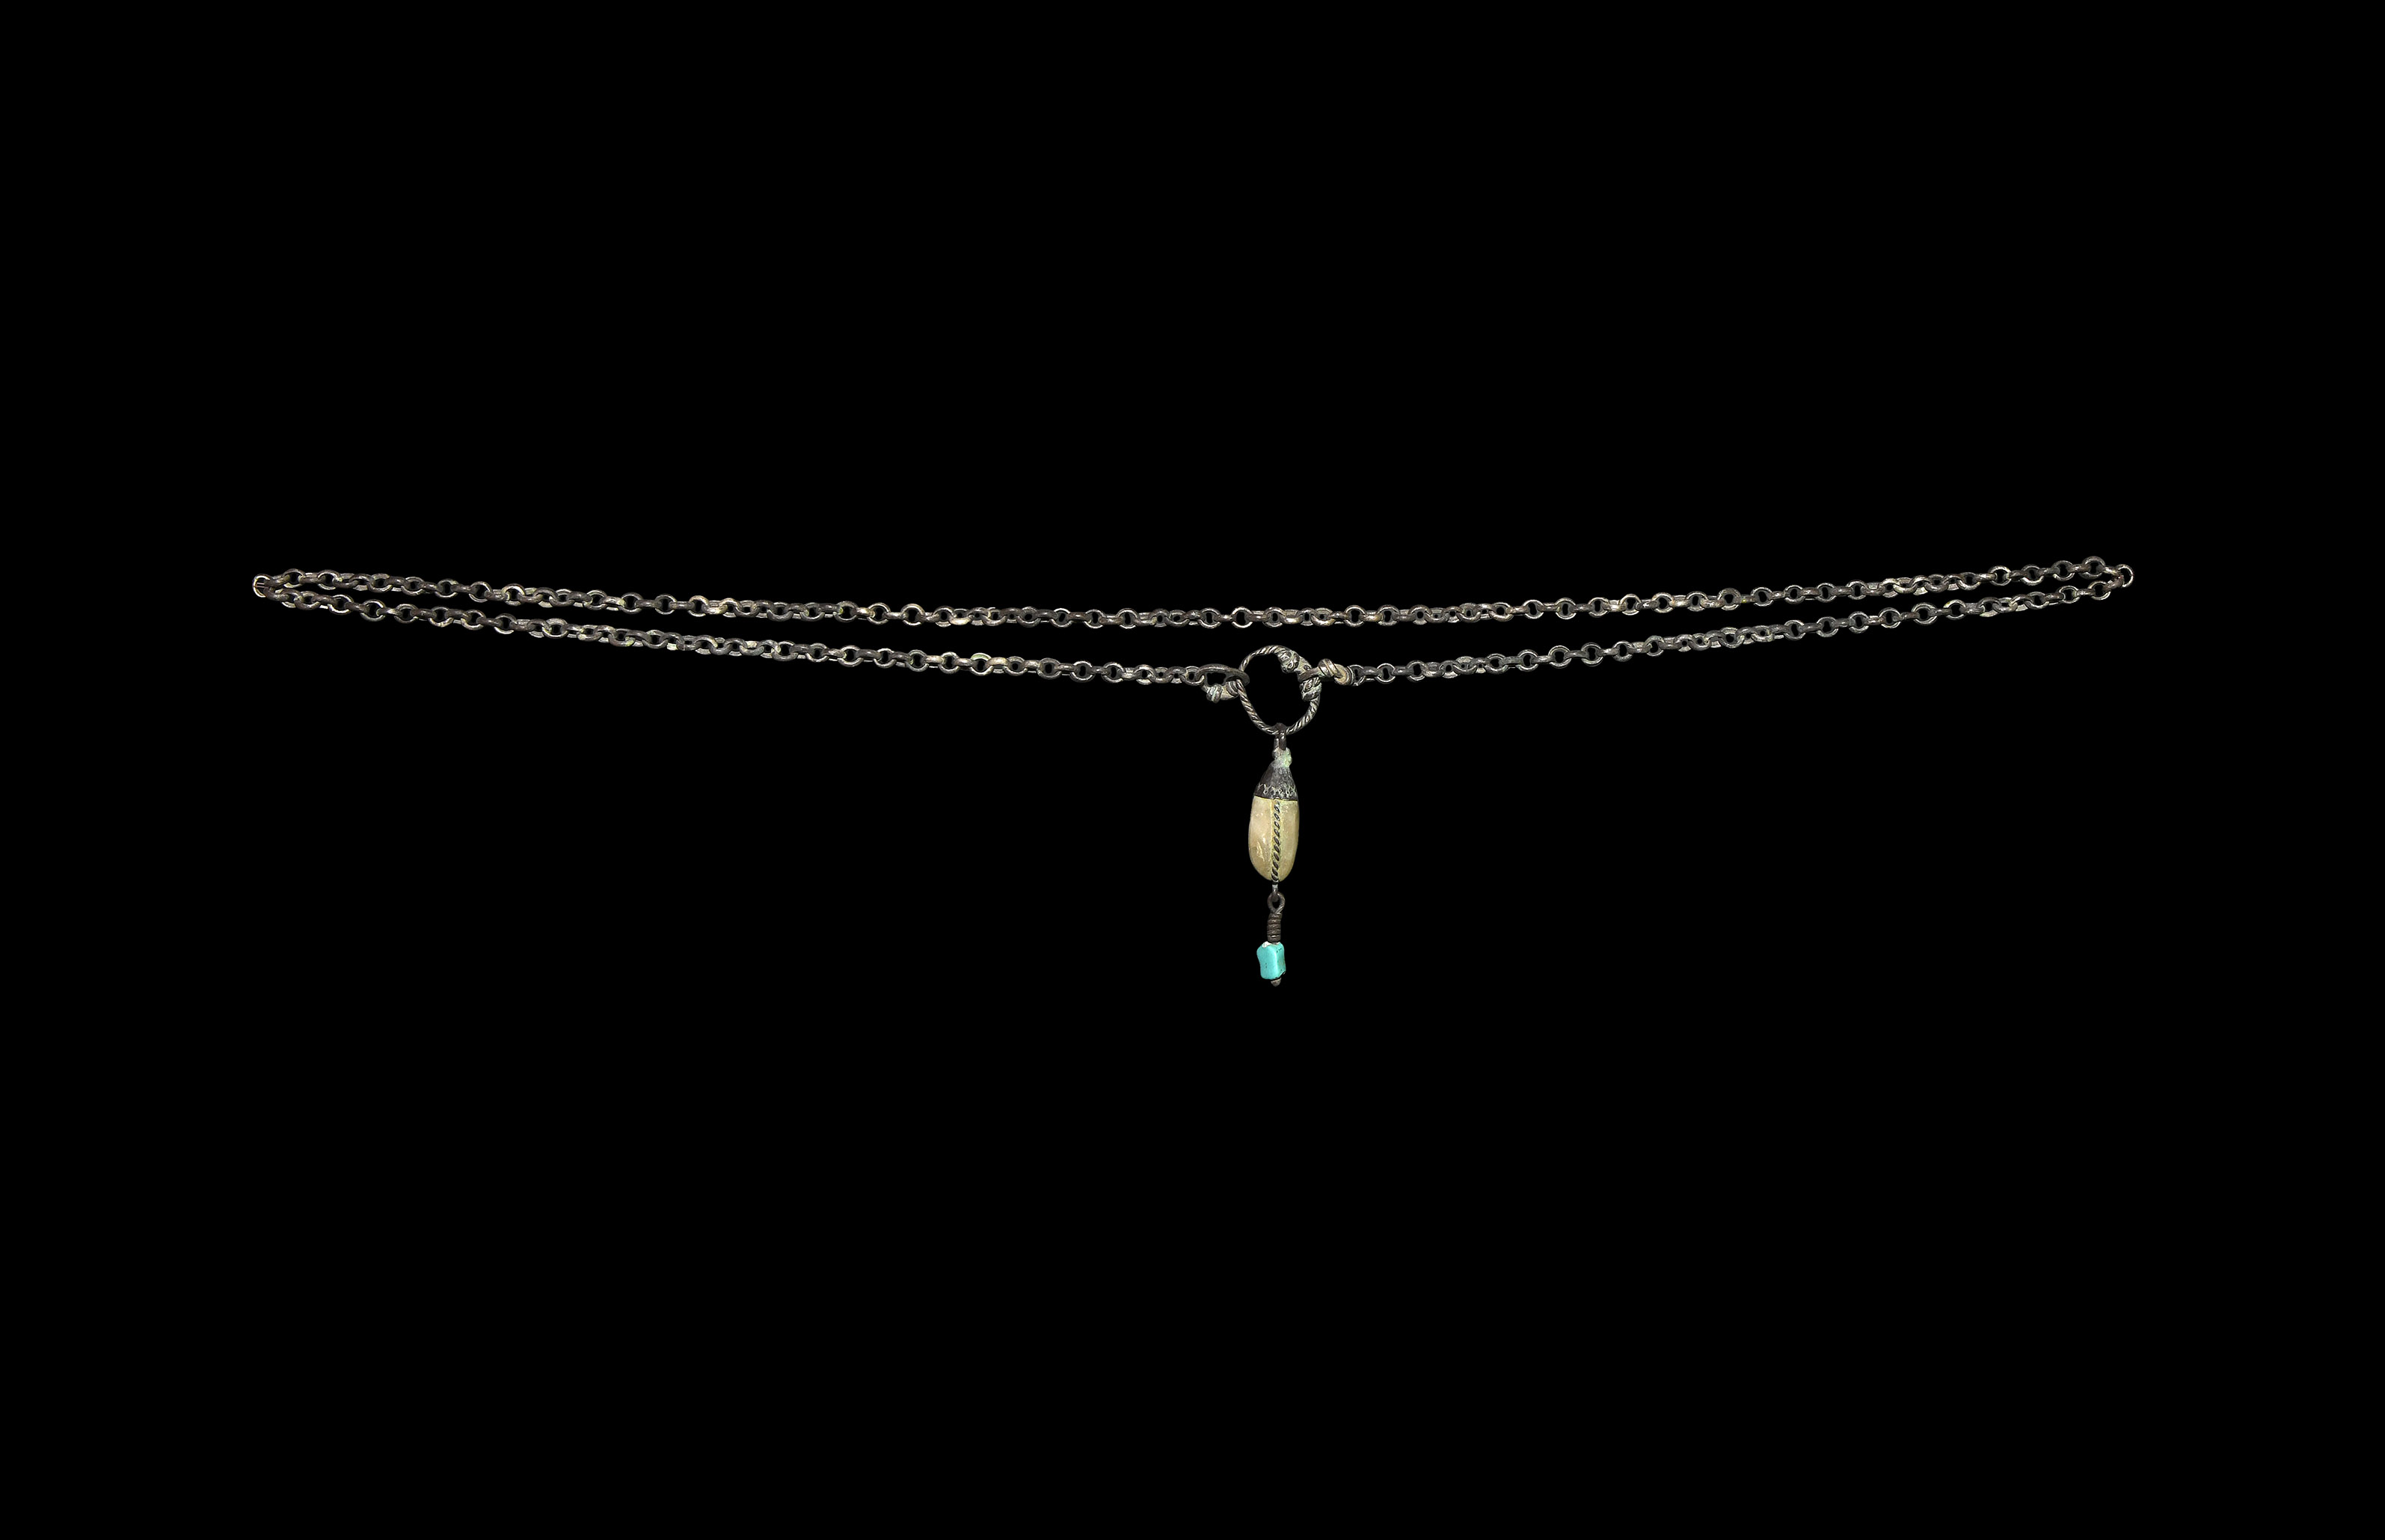 Viking Silver Chain with Gem Pendant